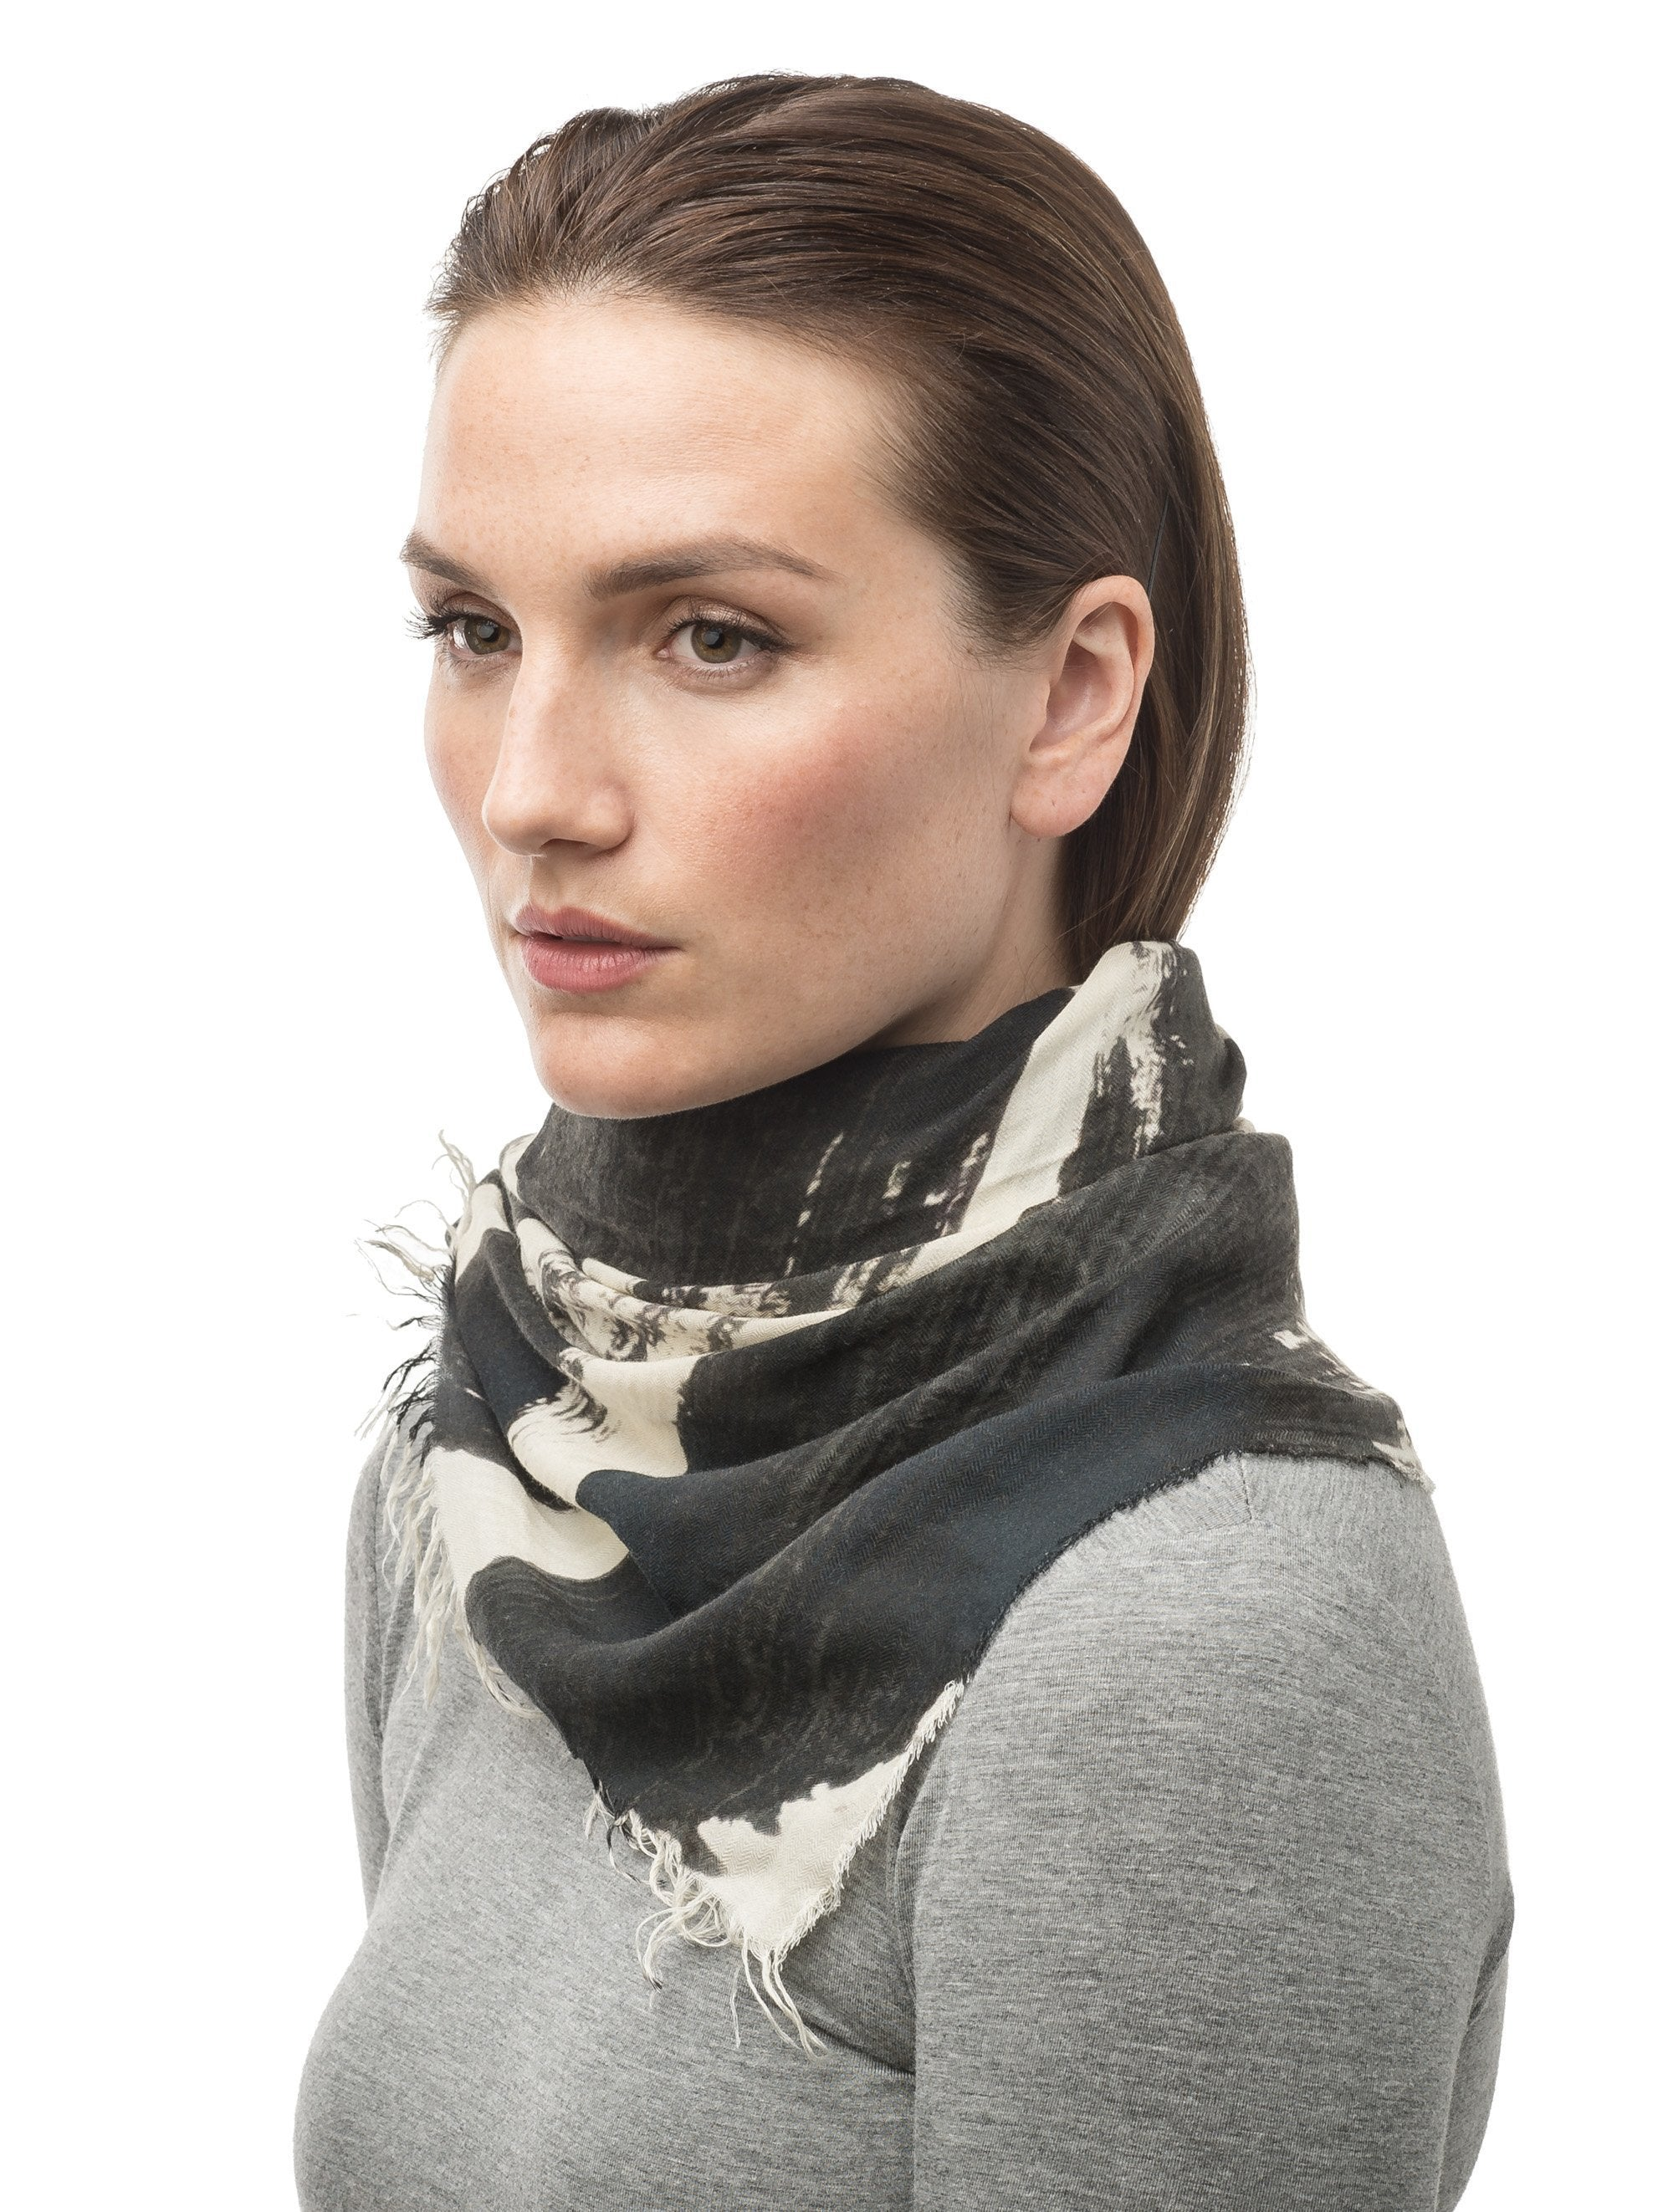 Square modal cashmere blend scarf with fringe edges in a contrast Black print | color